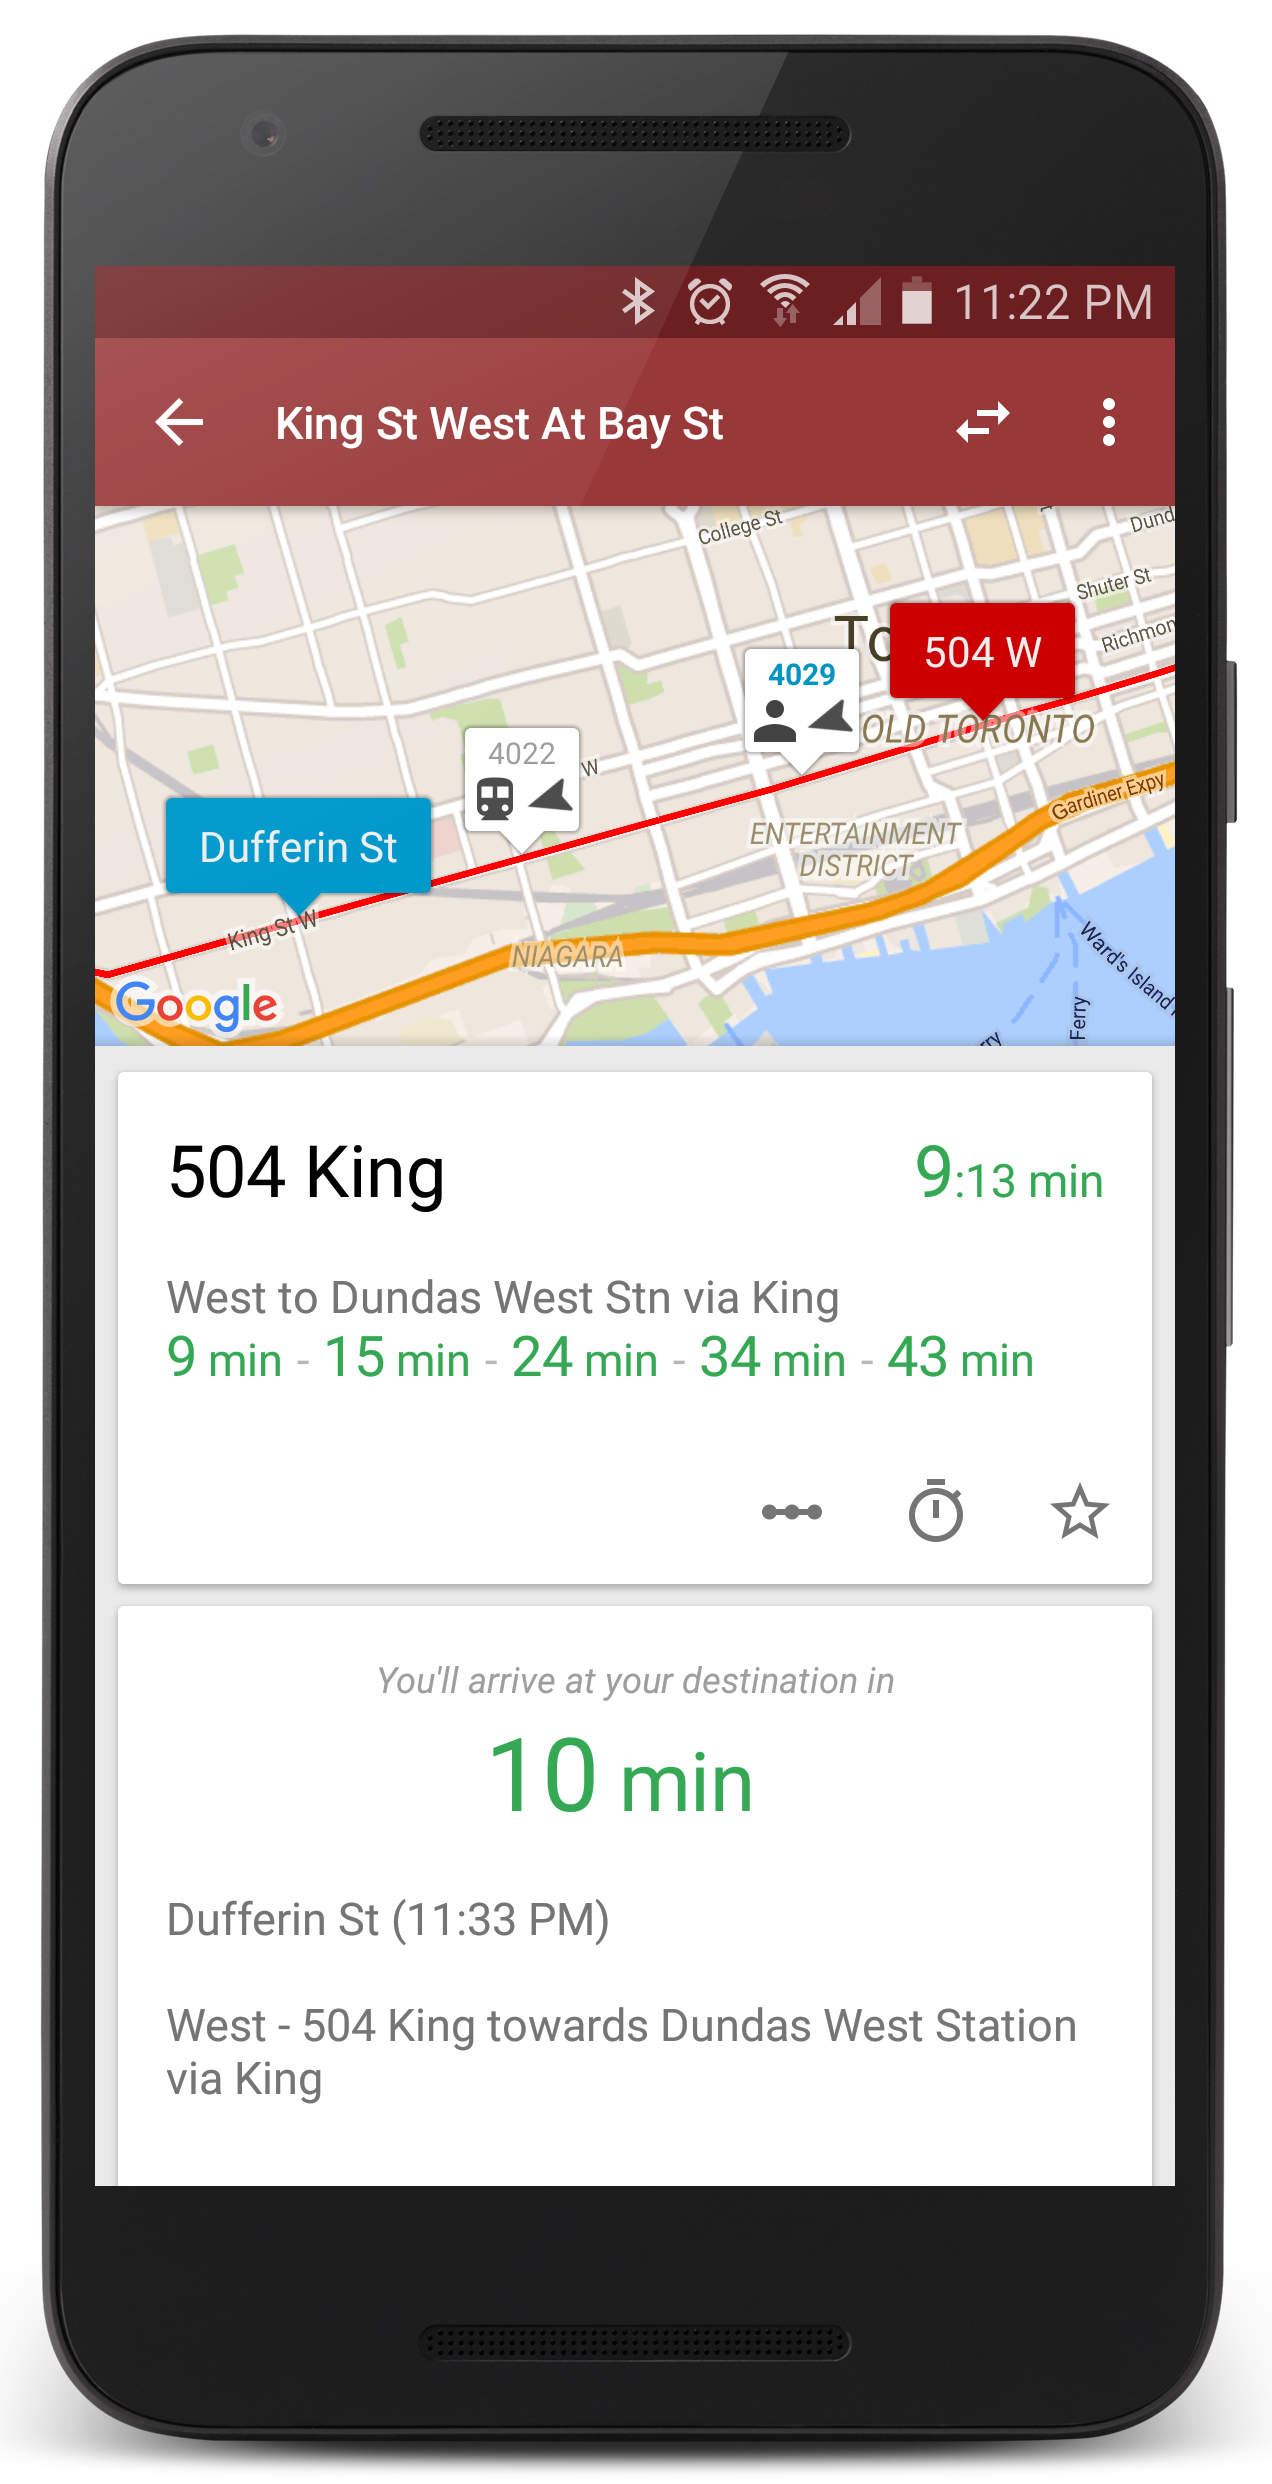 View bus and streetcars arrival times in real-time on a map.